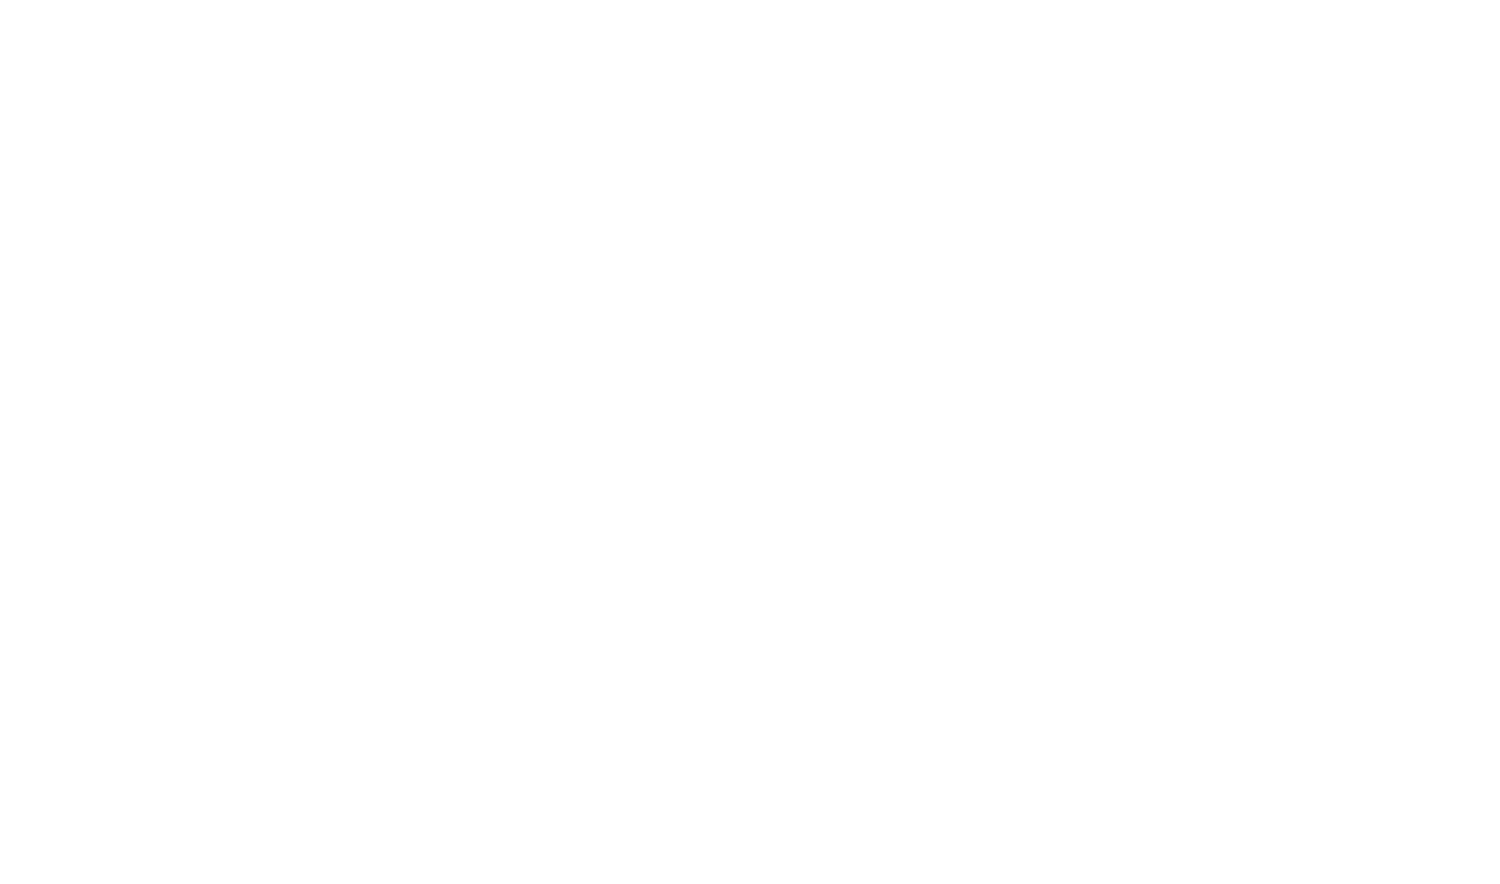 Meagan Lindsey Photography